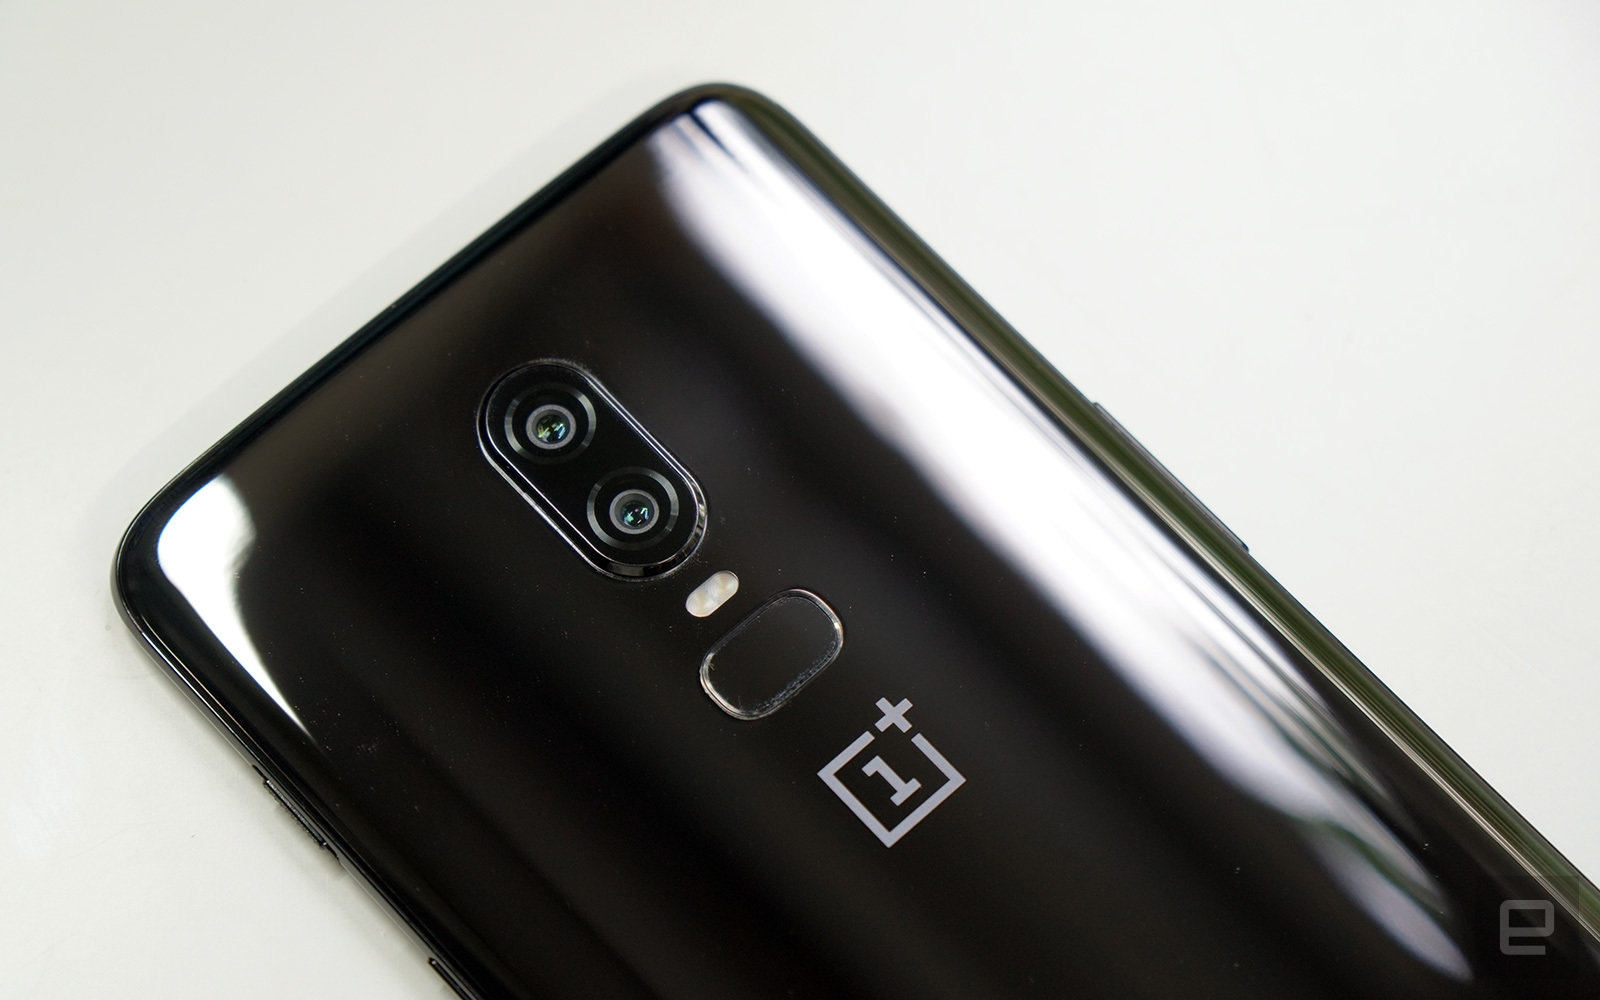 Bragi asks court to block sales of OnePlus 'Dash' products | DeviceDaily.com